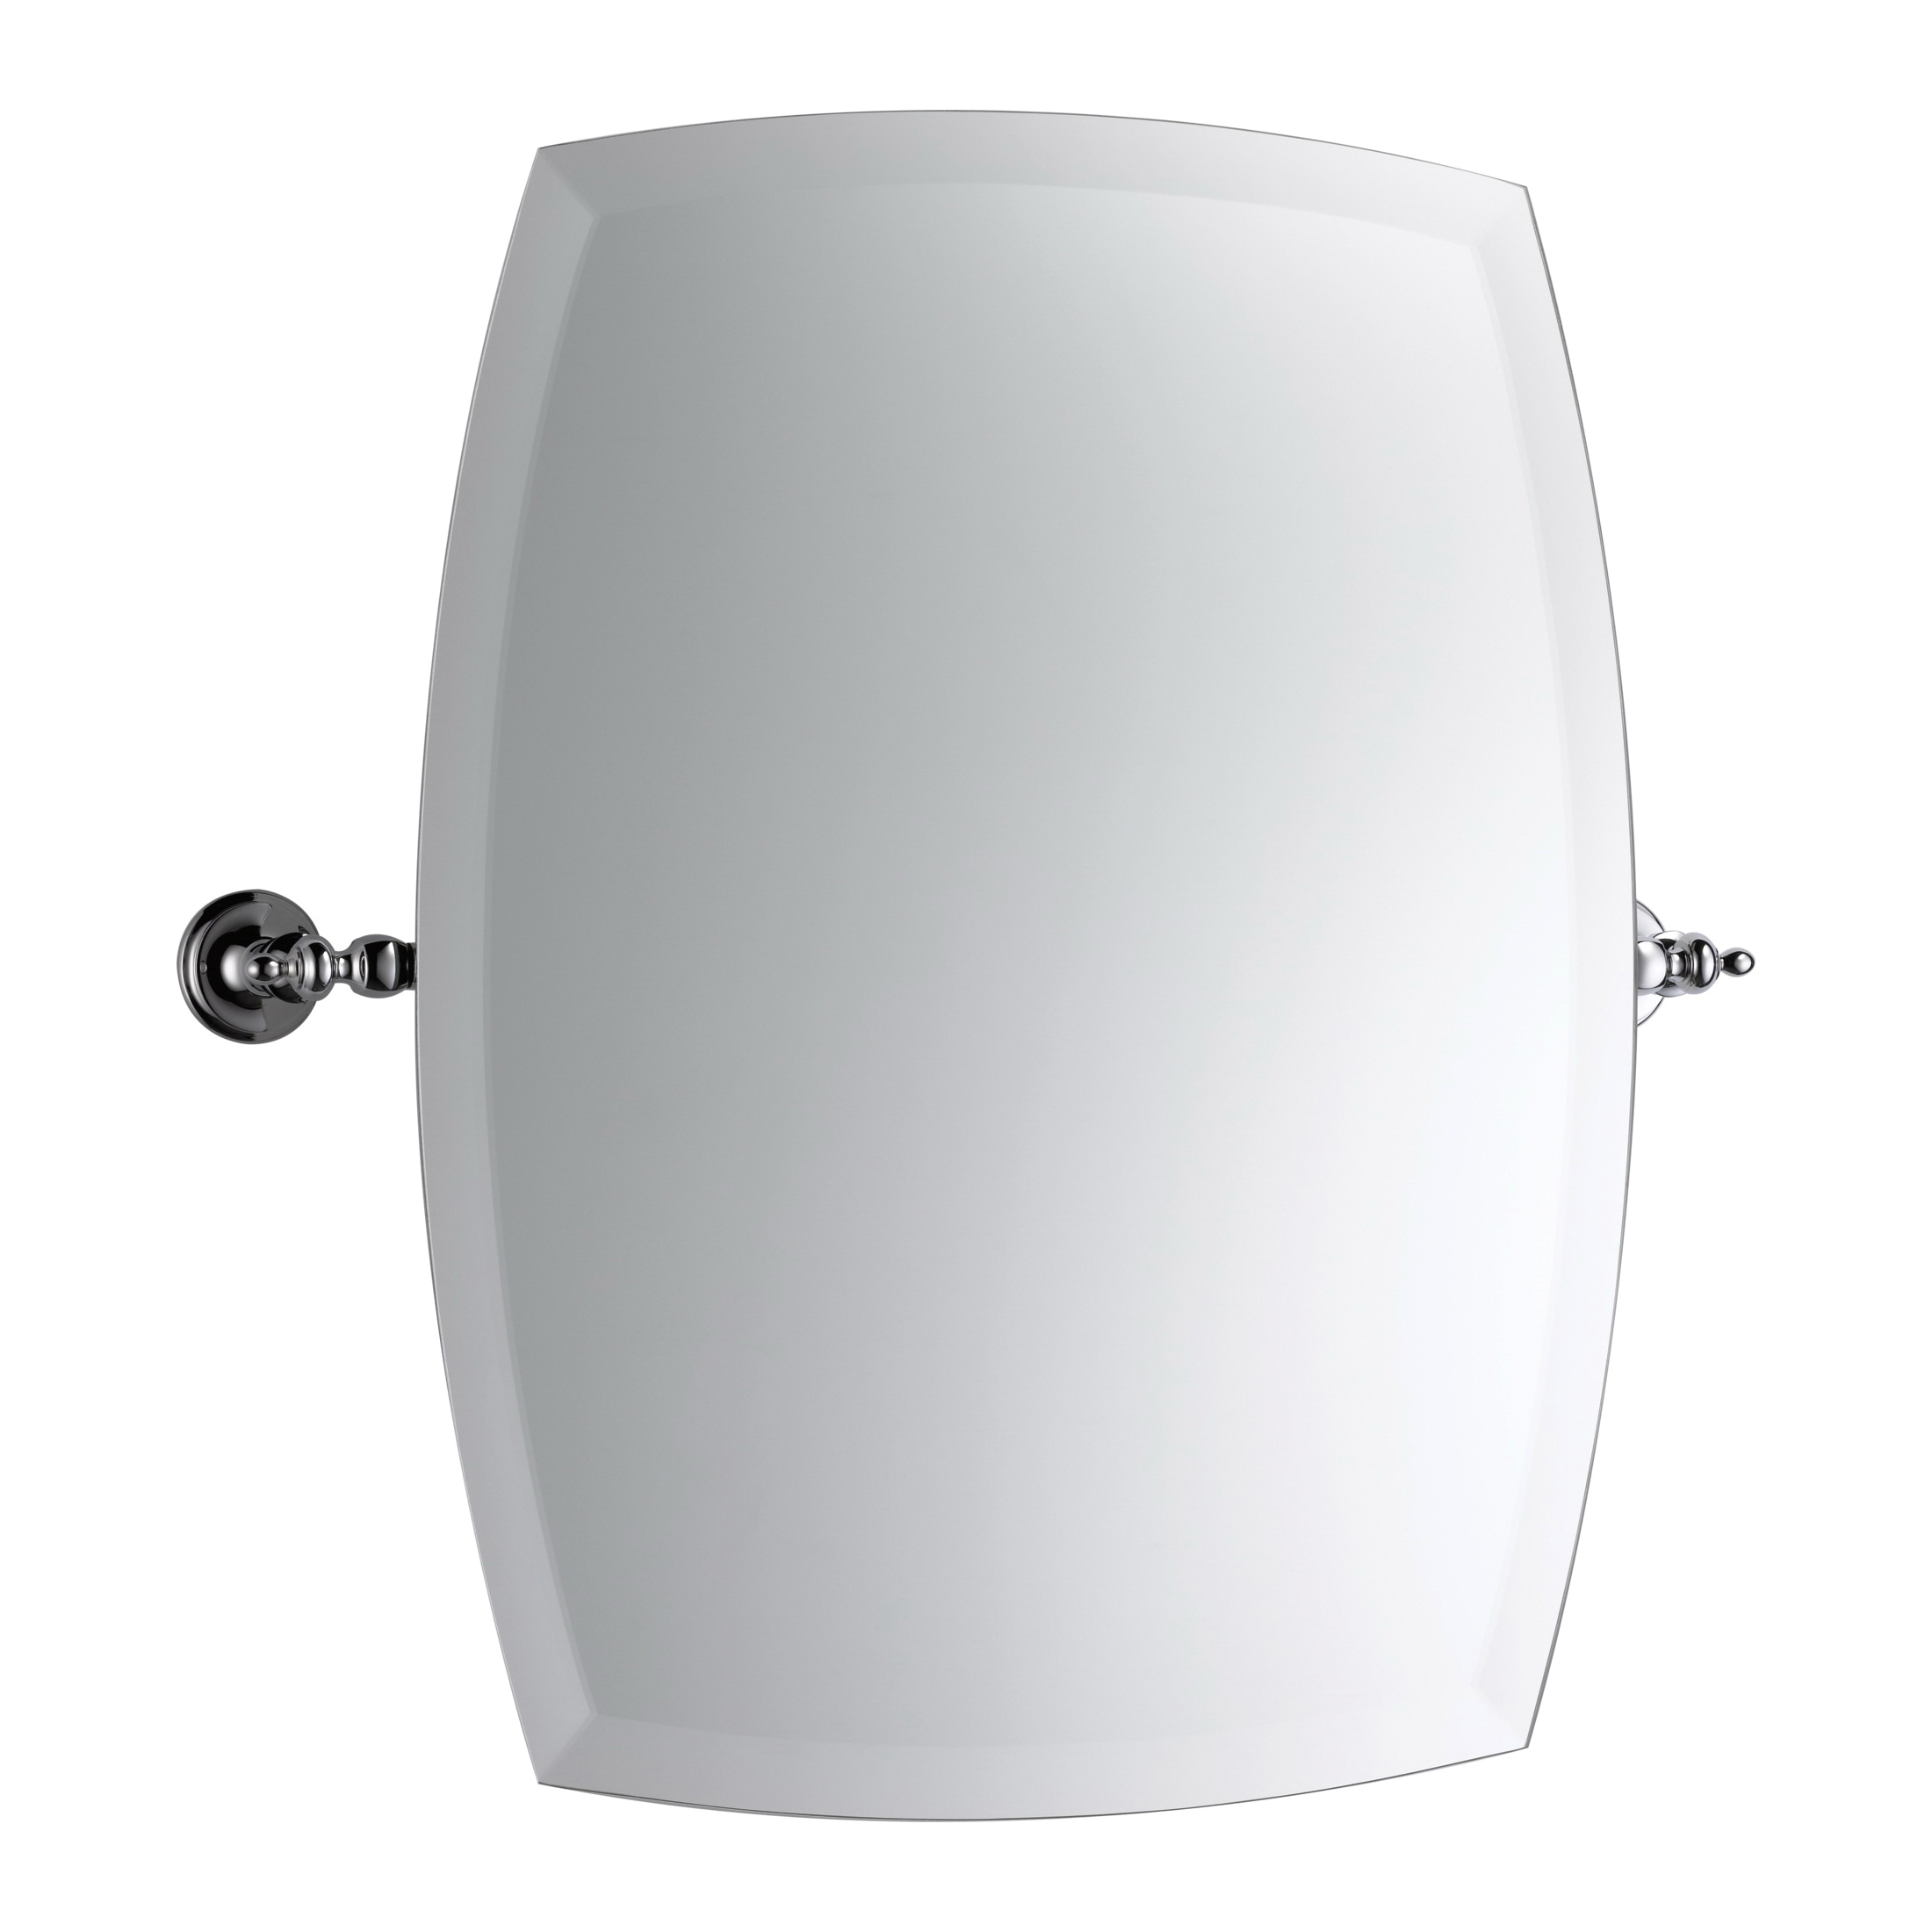 Brizo® 698085-PC Charlotte® Wall Mirror, Rectangular, 20 in W, Chrome Plated, Import